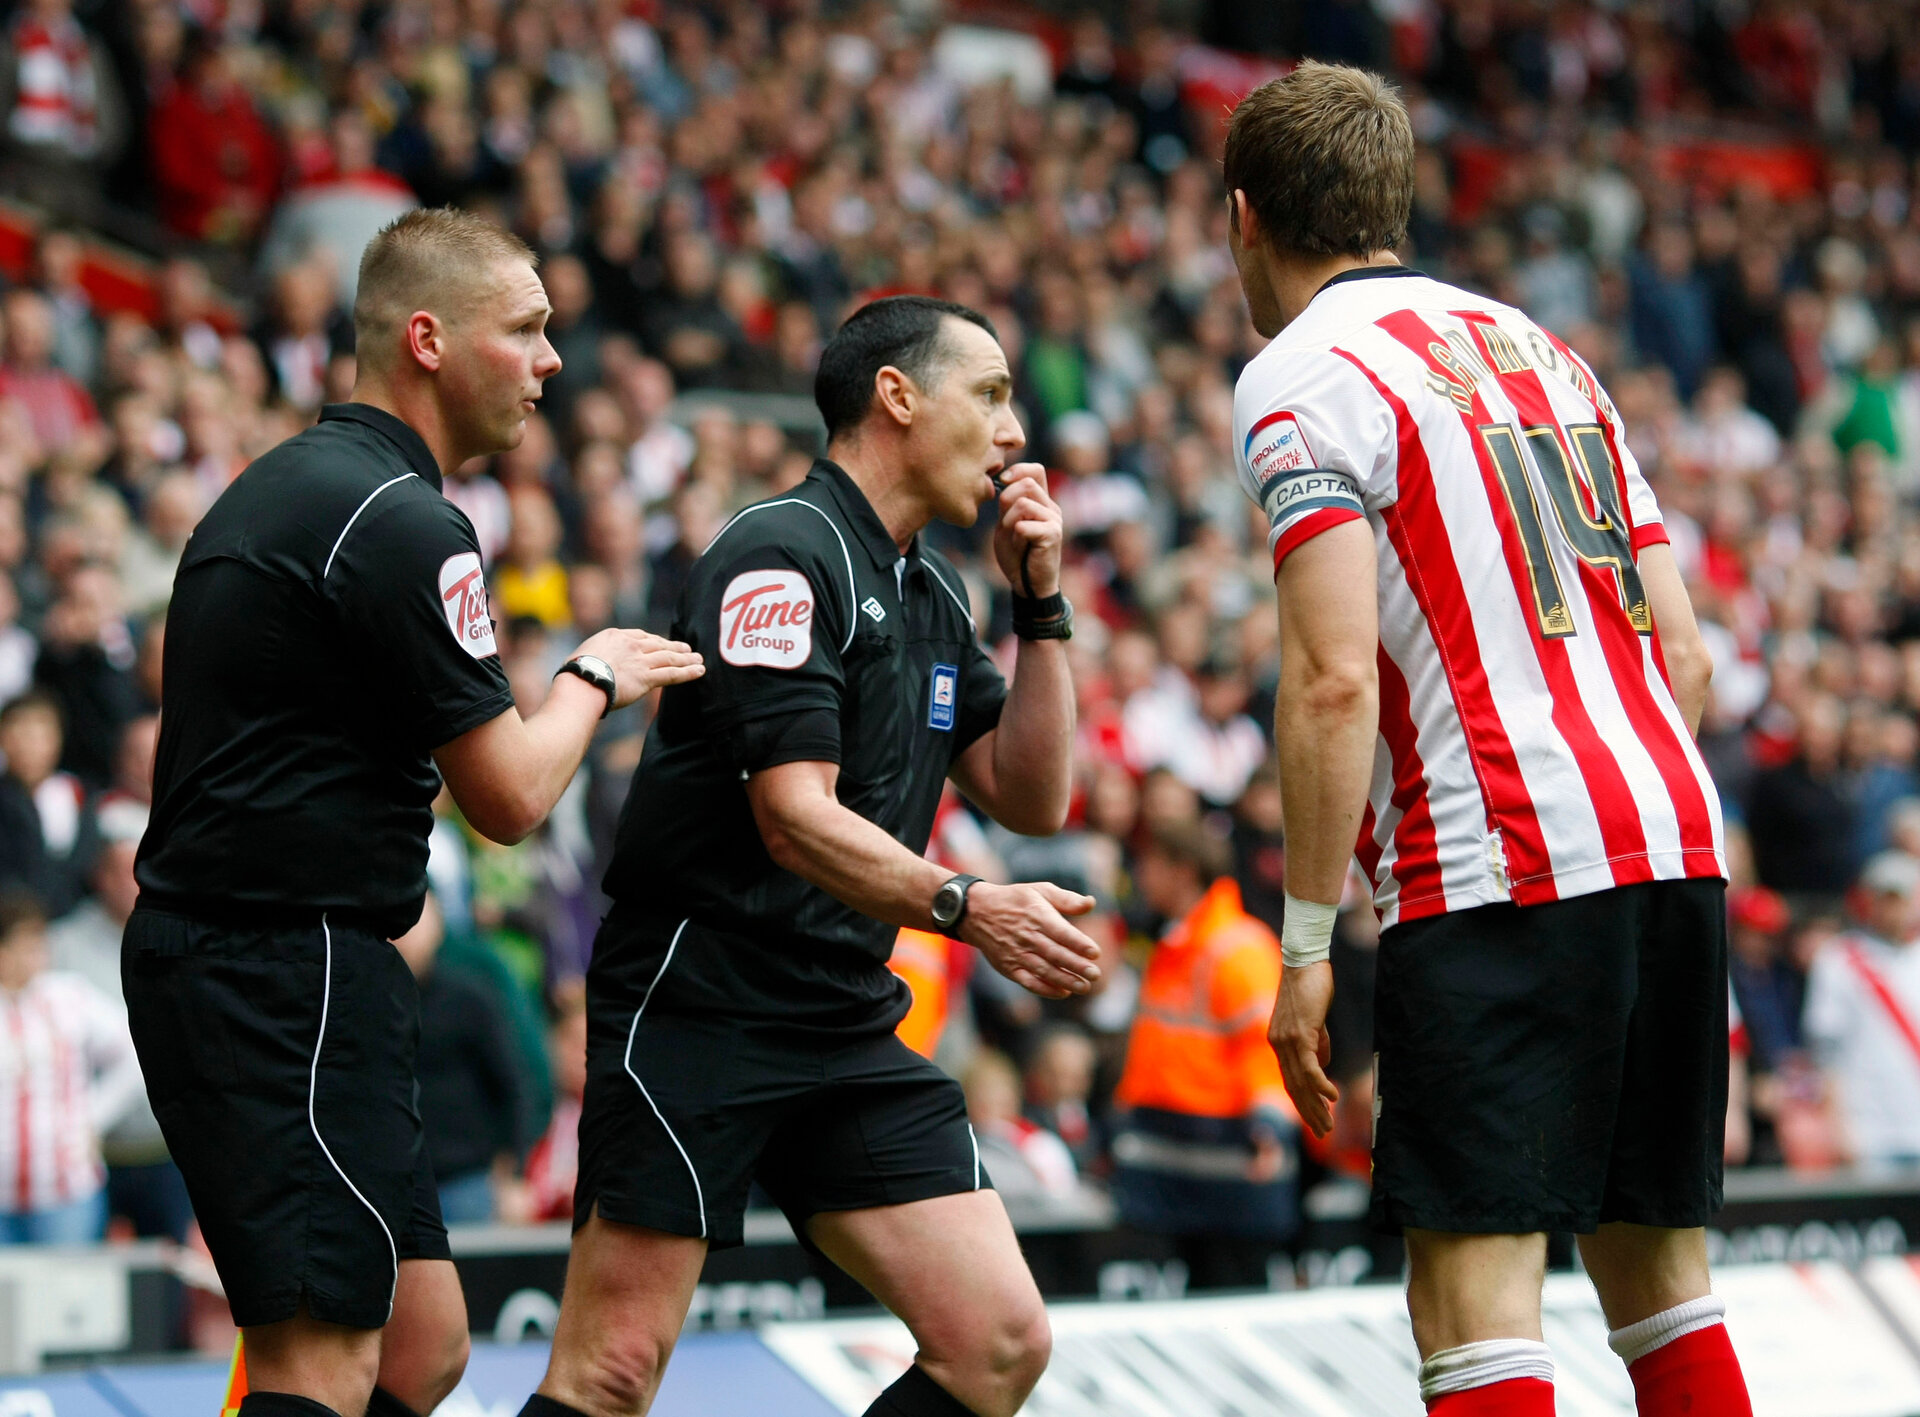 "Football - Southampton v Portsmouth npower Football League Championship  - St Mary's Stadium  - 7/4/12  Referee Neil Swarbrick (C) talks with assistant referee John Flynn before awarding the second Southampton goal scored by Billy Sharp (Not Pictured) as Southampton's Dean Hammond (R) looks on  Mandatory Credit: Action Images / James Benwell  Livepic  EDITORIAL USE ONLY. No use with unauthorized audio, video, data, fixture lists, club/league logos or live services. Online in-match use limited to 45 images, no video emulation. No use in betting, games or single club/league/player publications.  Please contact your account representative for further details. Football - Southampton v Portsmouth npower Football League Championship  - St Mary's Stadium  - 7/4/12 Referee Neil Swarbrick (C) talks with assistant referee John Flynn before awarding the second Southampton goal scored by Billy Sharp (Not Pictured) as Southampton's Dean Hammond (R) looks on Mandatory Credit: Action Images / James Benwell Livepic EDITORIAL USE ONLY. No use with unauthorized audio, video, data, fixture lists, club/league logos or ""live"" services. Online in-match use limited to 45 images, no video emulation. No use in betting, games or single club/league/player publications.  Please contact your account representative for further details."